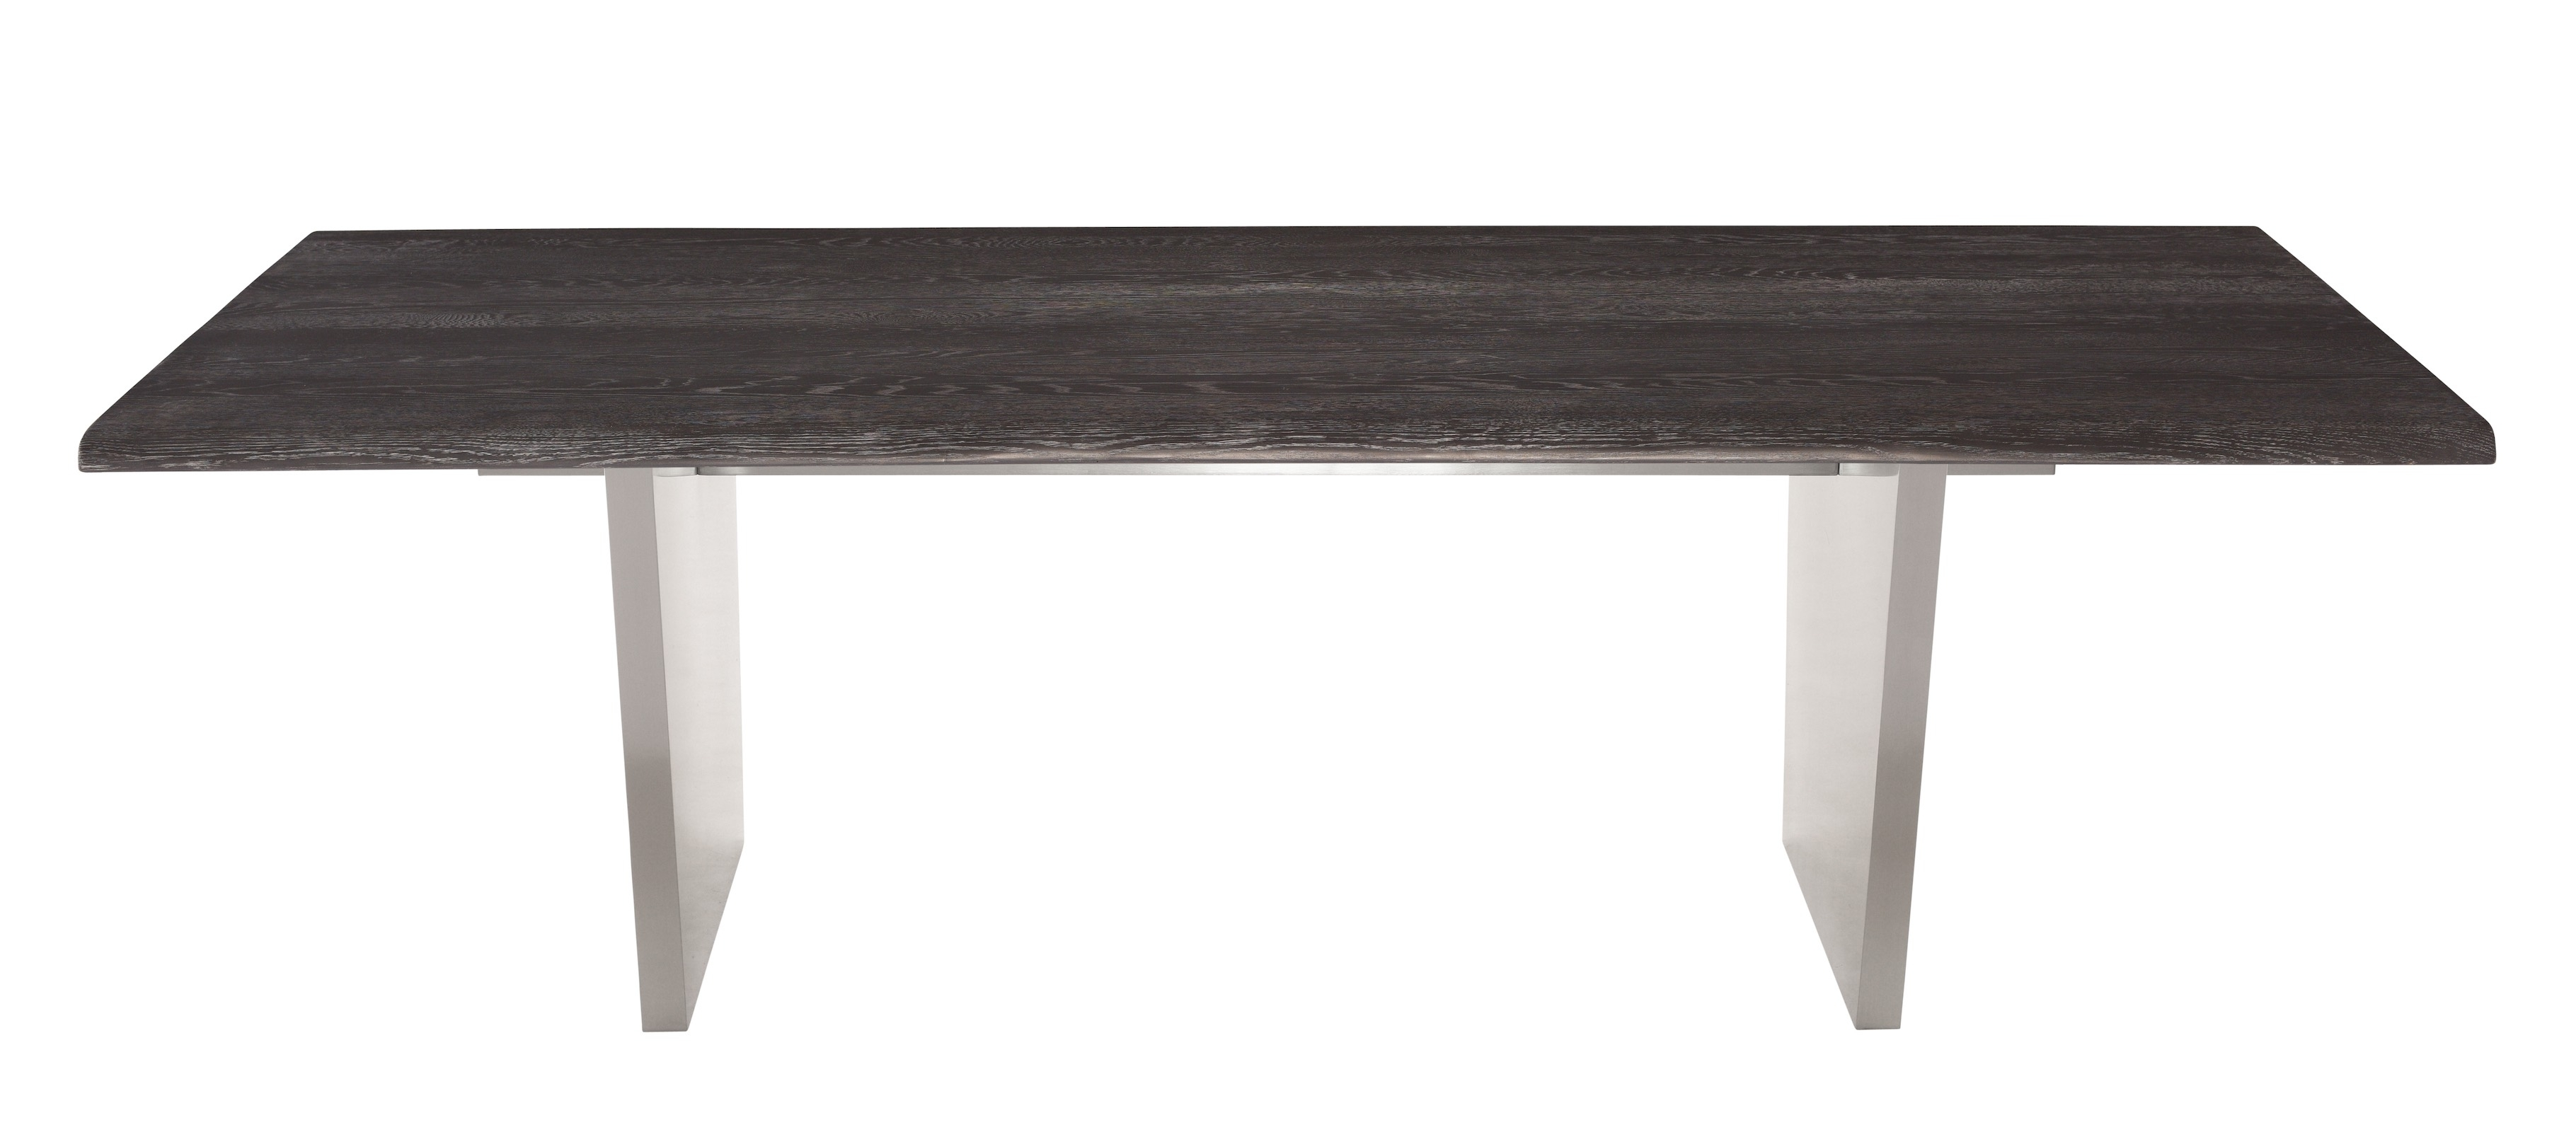 Aiden 78 Inch Rectangular Dining Table In Brushed Stainless And Inside Most Recently Released Portland 78 Inch Dining Tables (Image 2 of 20)